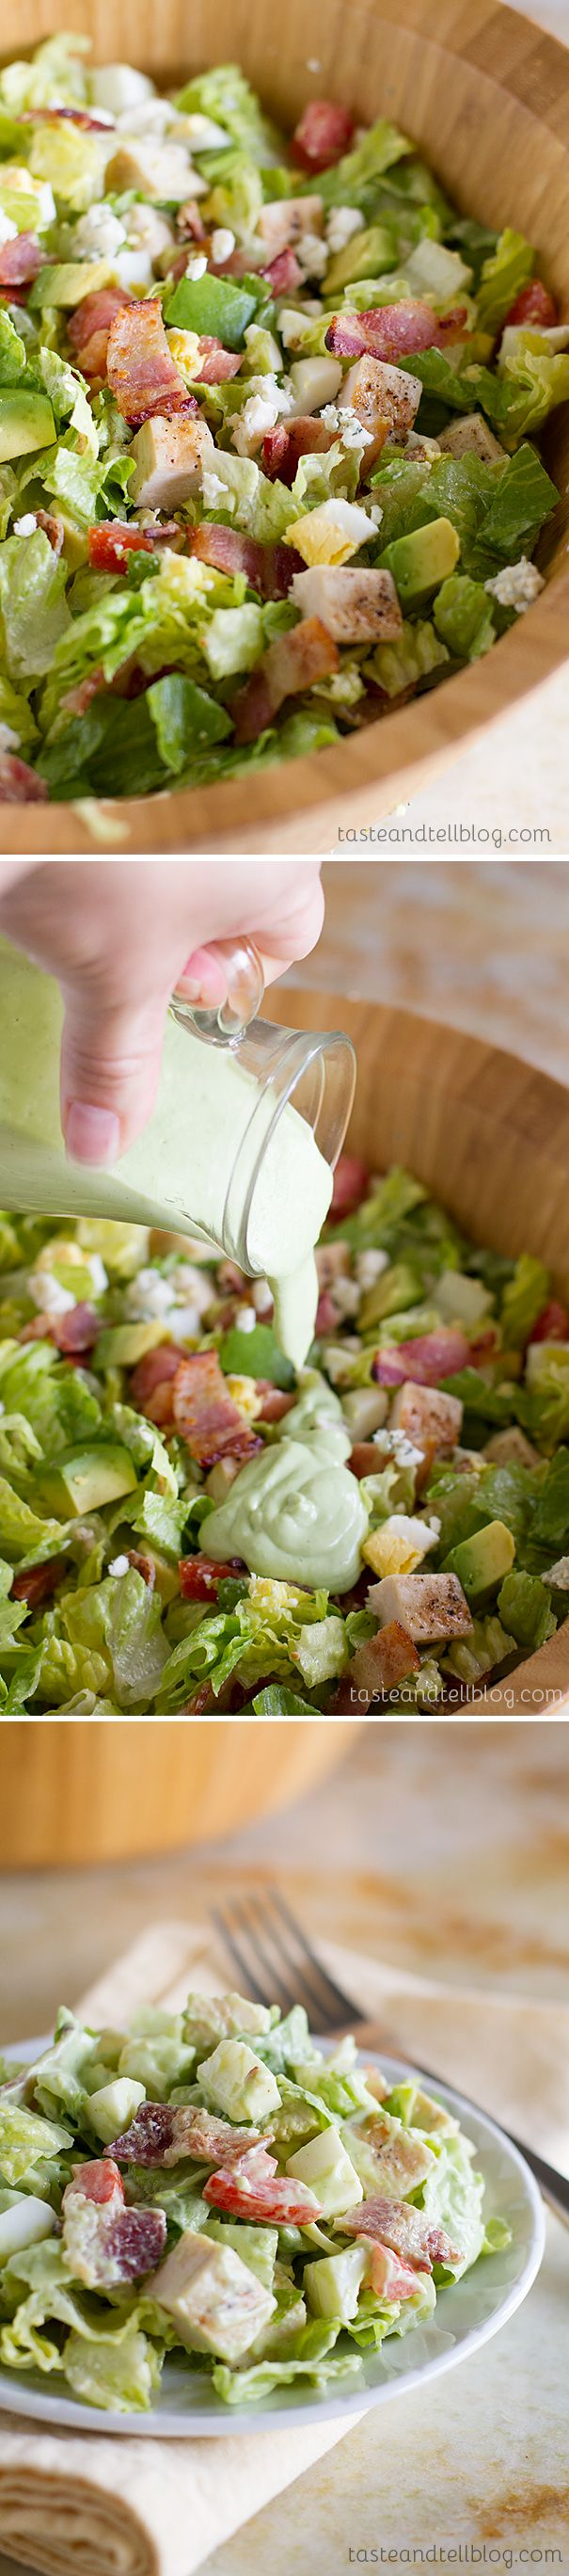 Chopped Cobb Salad @deborahharroun